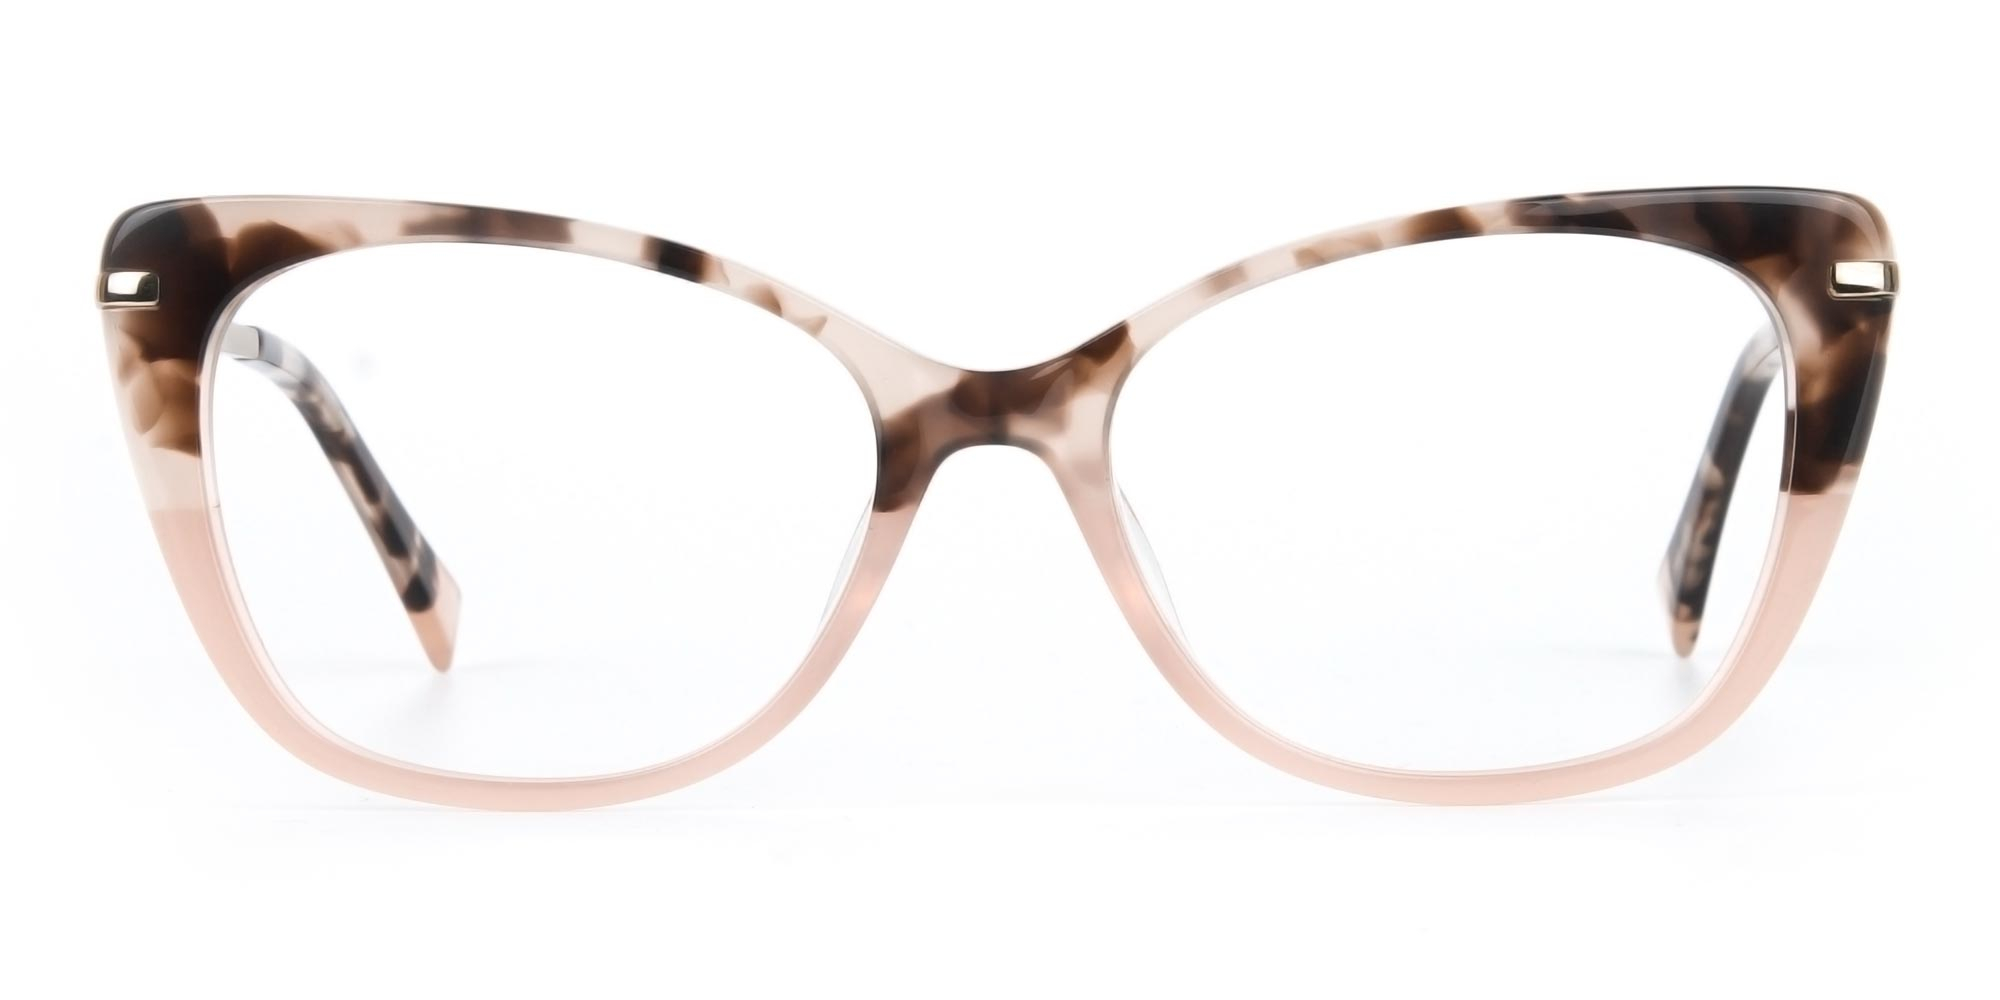 Tortoise and Rosy Pink Cat-Eye Glasses for diamond face shape